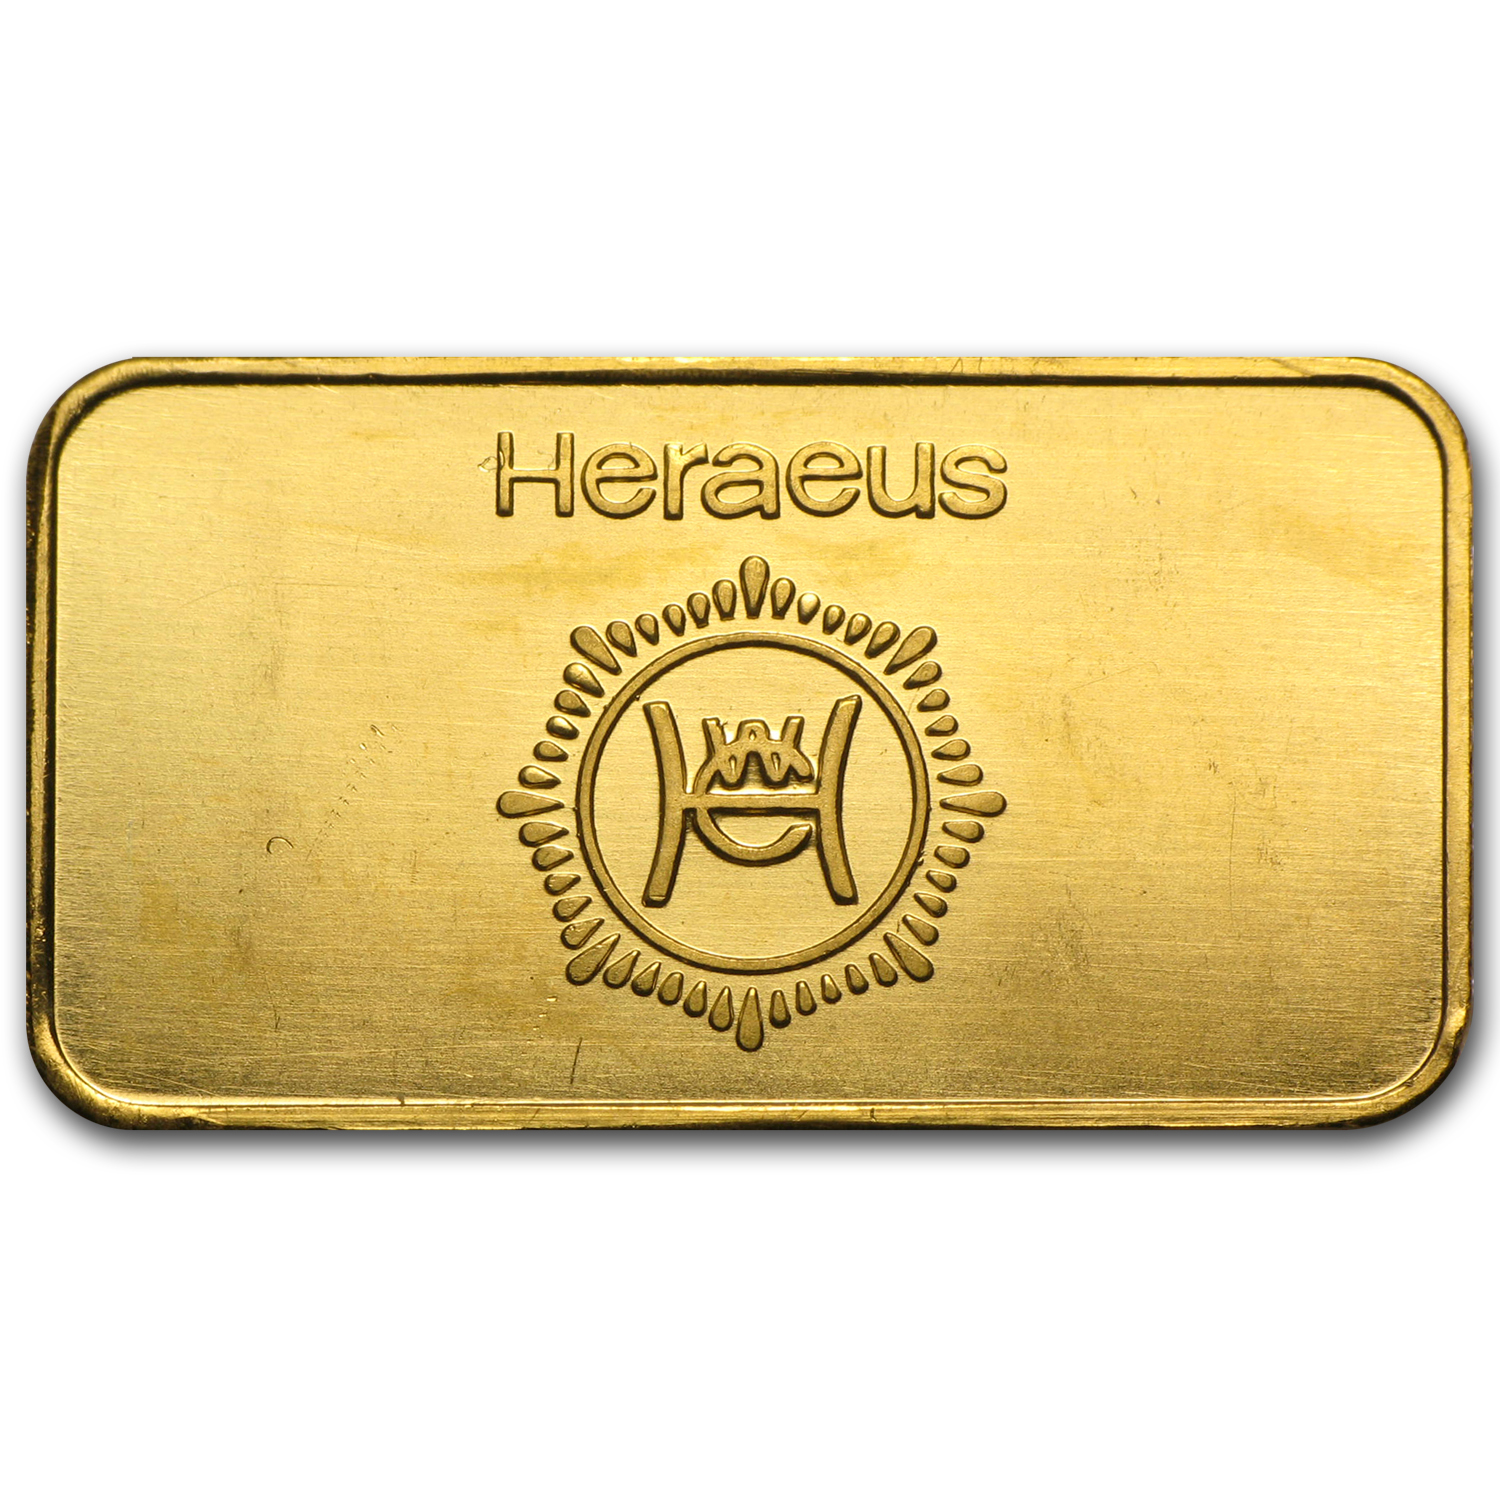 1/2 oz Gold Bars - Heraeus (RNB)